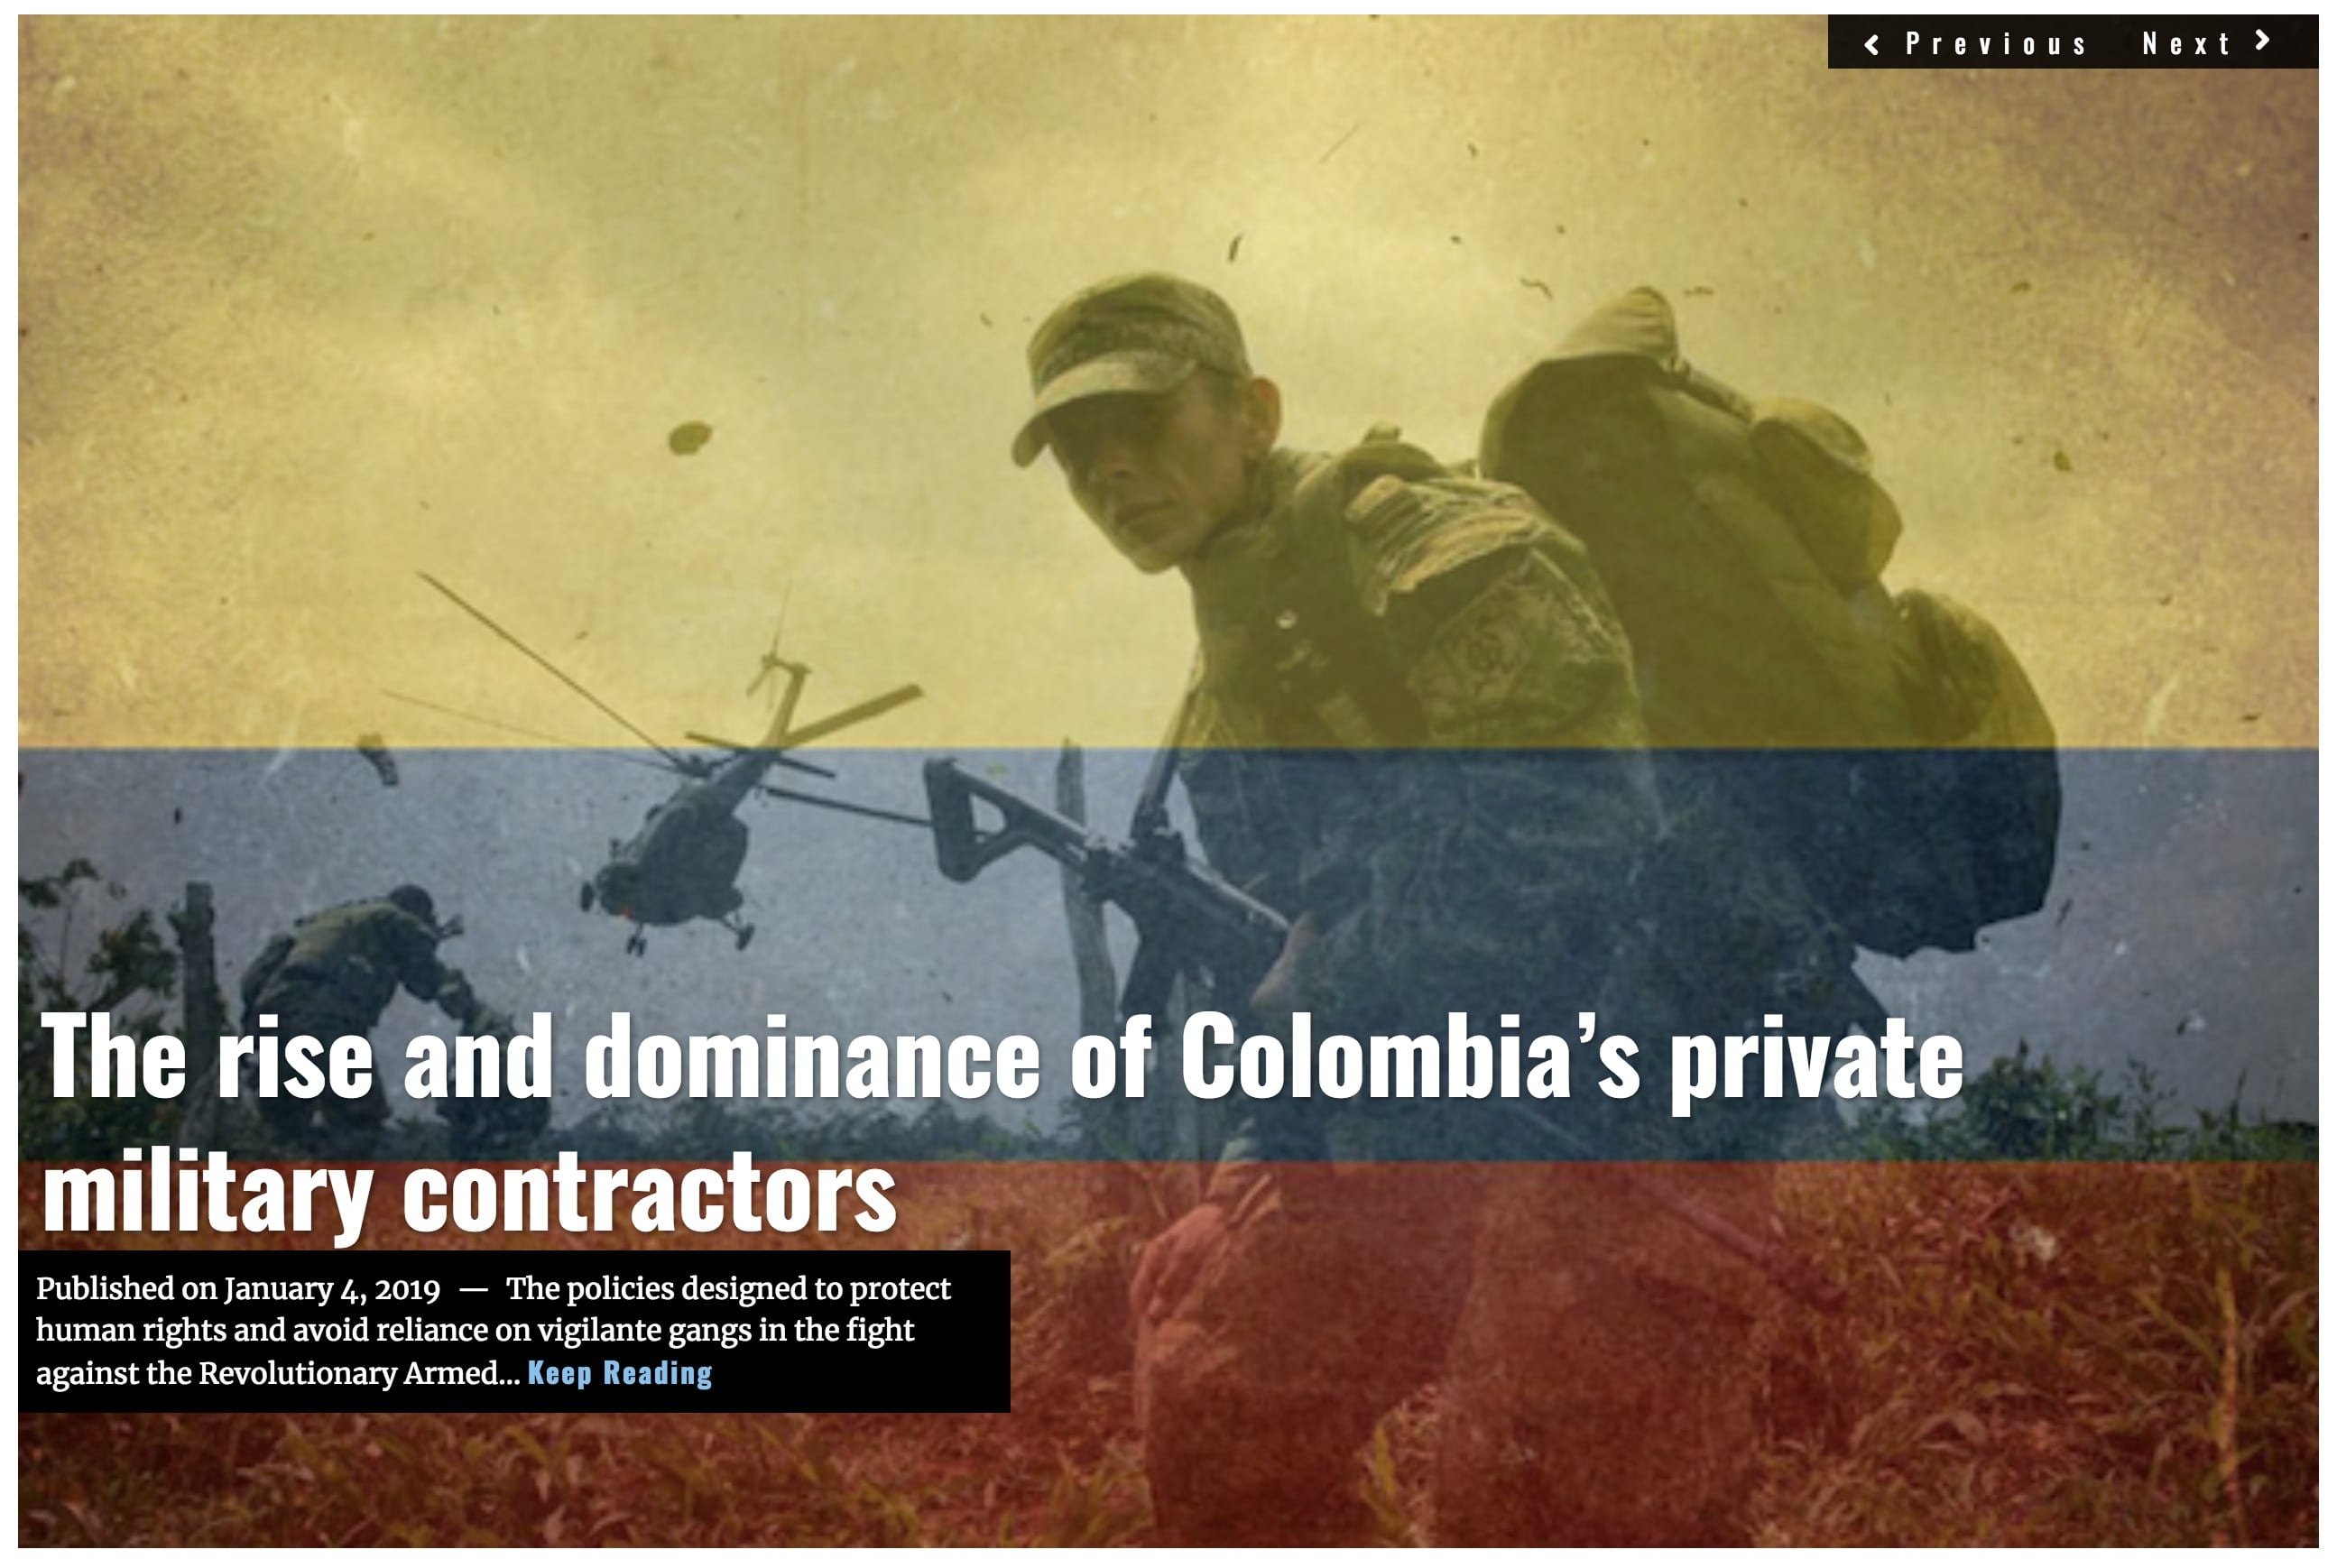 Image Lima Charlie News Headline Colombia private military contractors JAN 4 2018 (1)